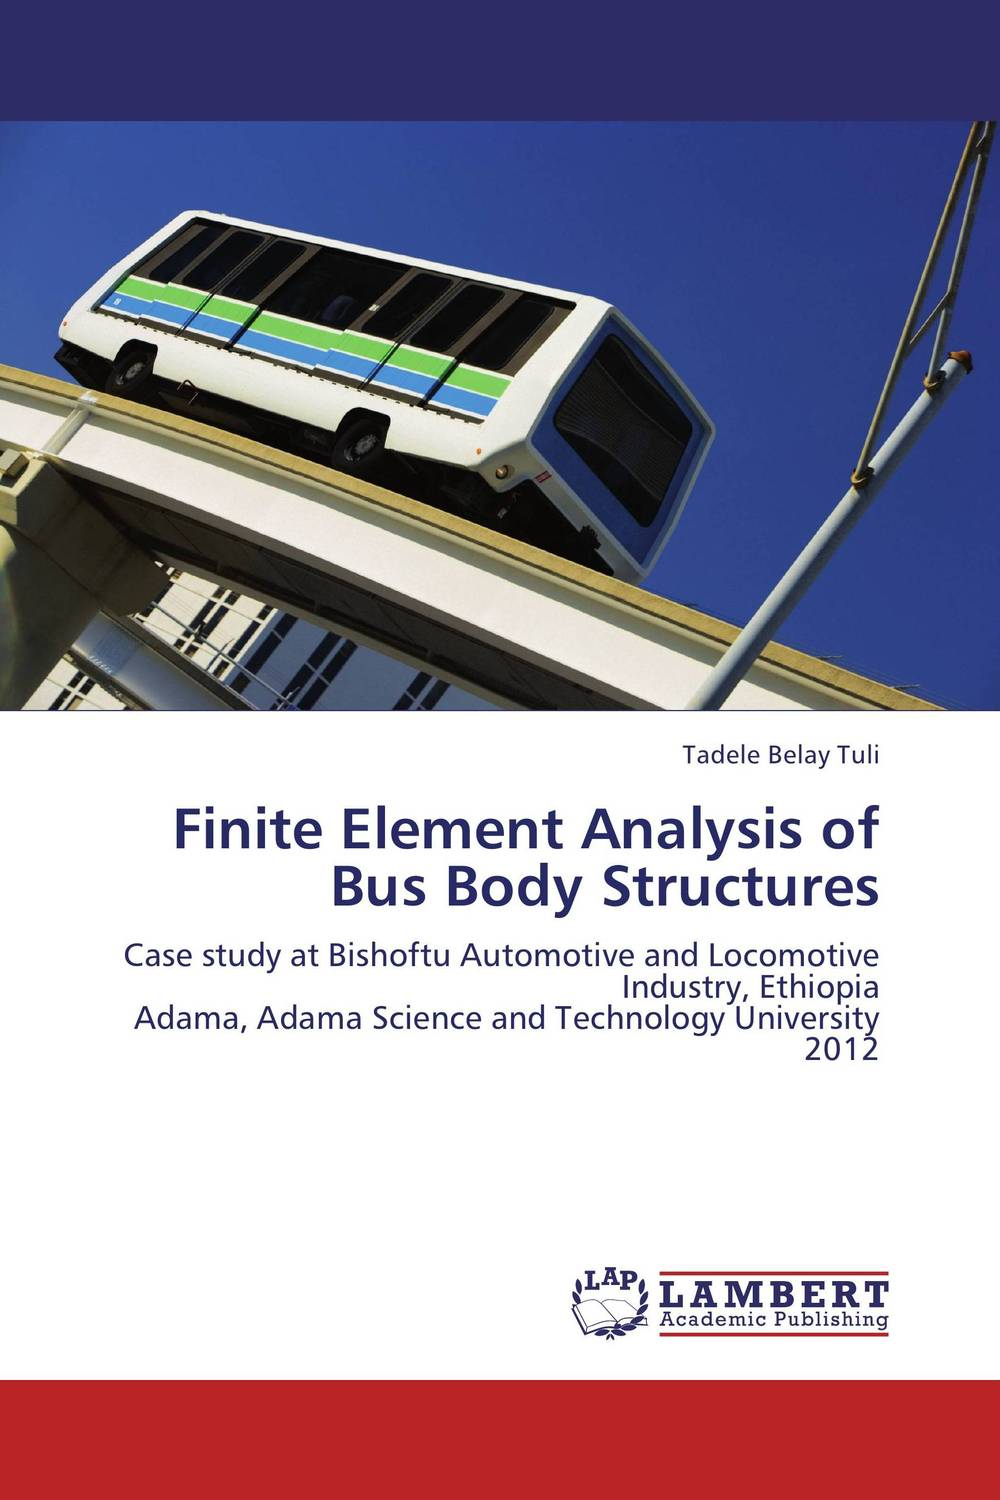 Finite Element Analysis of Bus Body Structures rd cook cook concepts and applications of finite element analysis 2ed